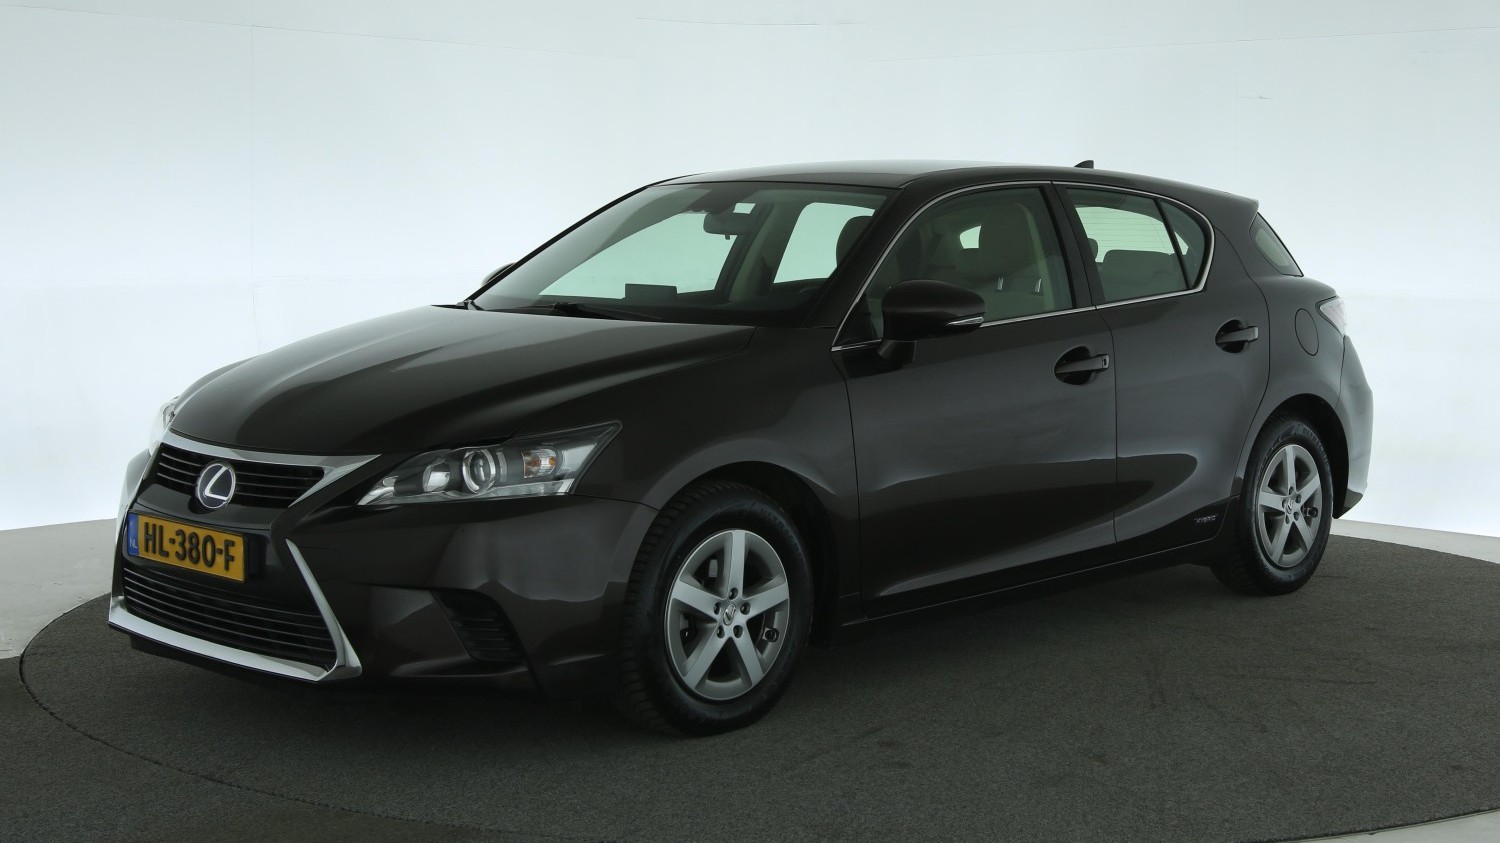 Lexus CT 200H Hatchback 2015 HL-380-F 1